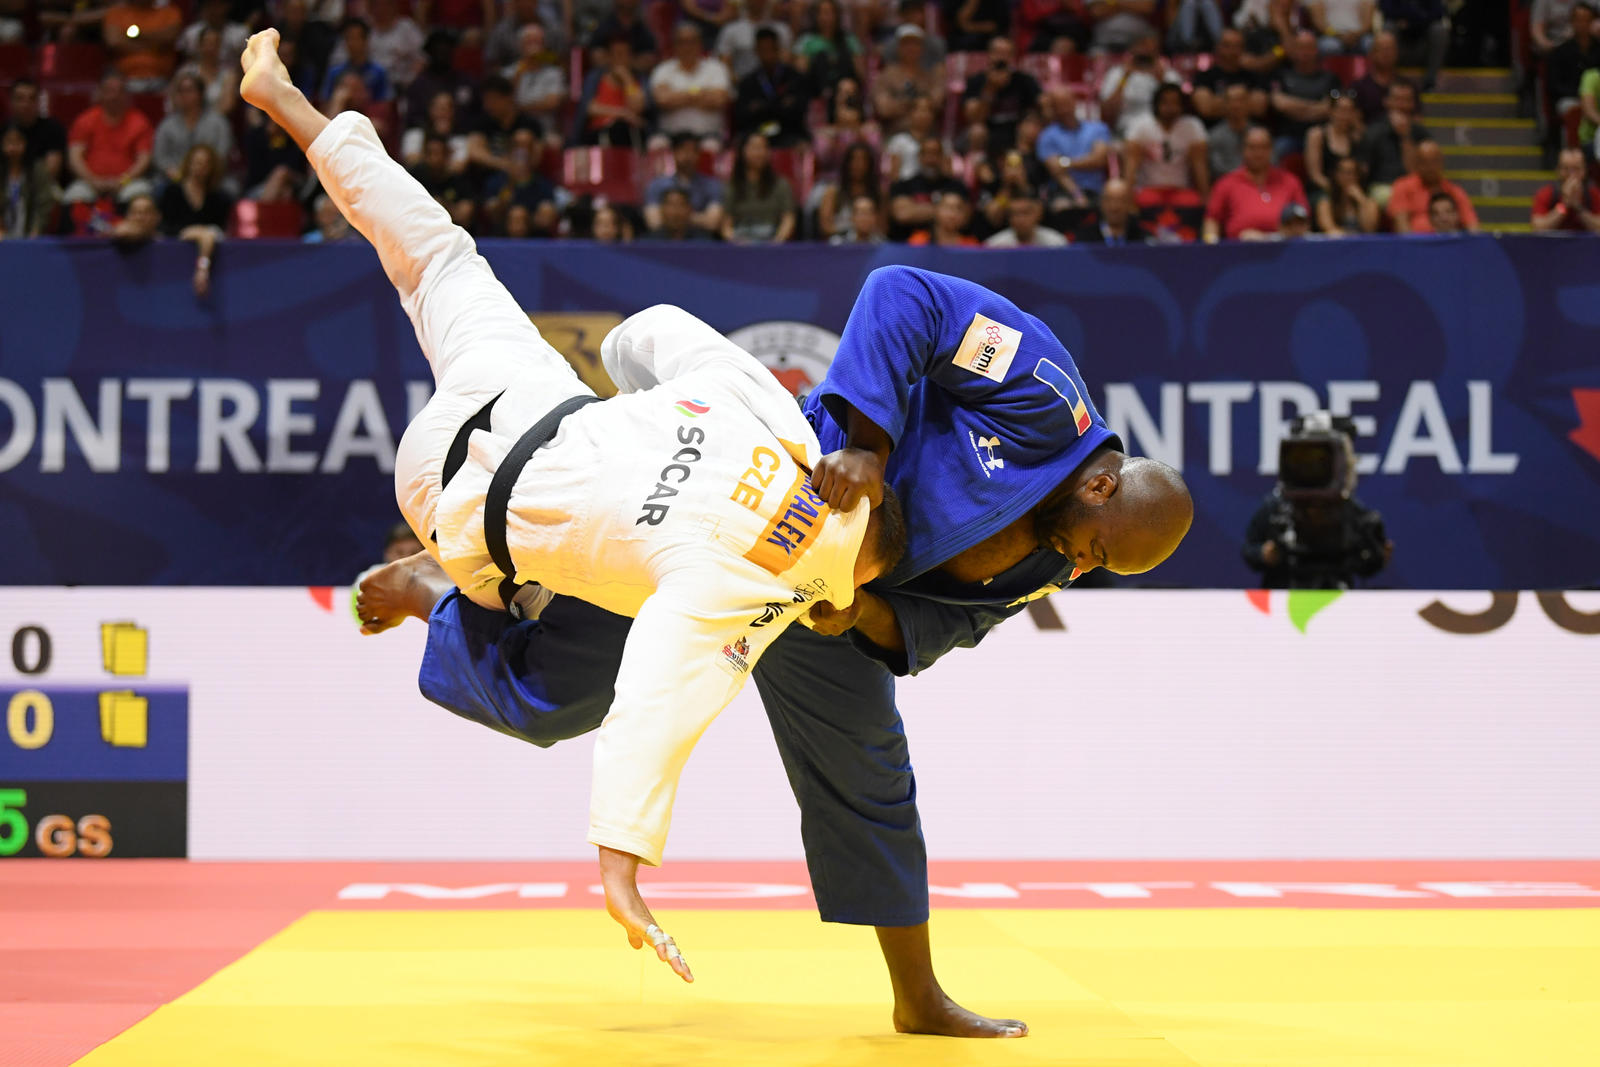 Teddy Riner at the 2019 Montreal Grand Prix (photo credit: Philippe Millereau/KMSP)